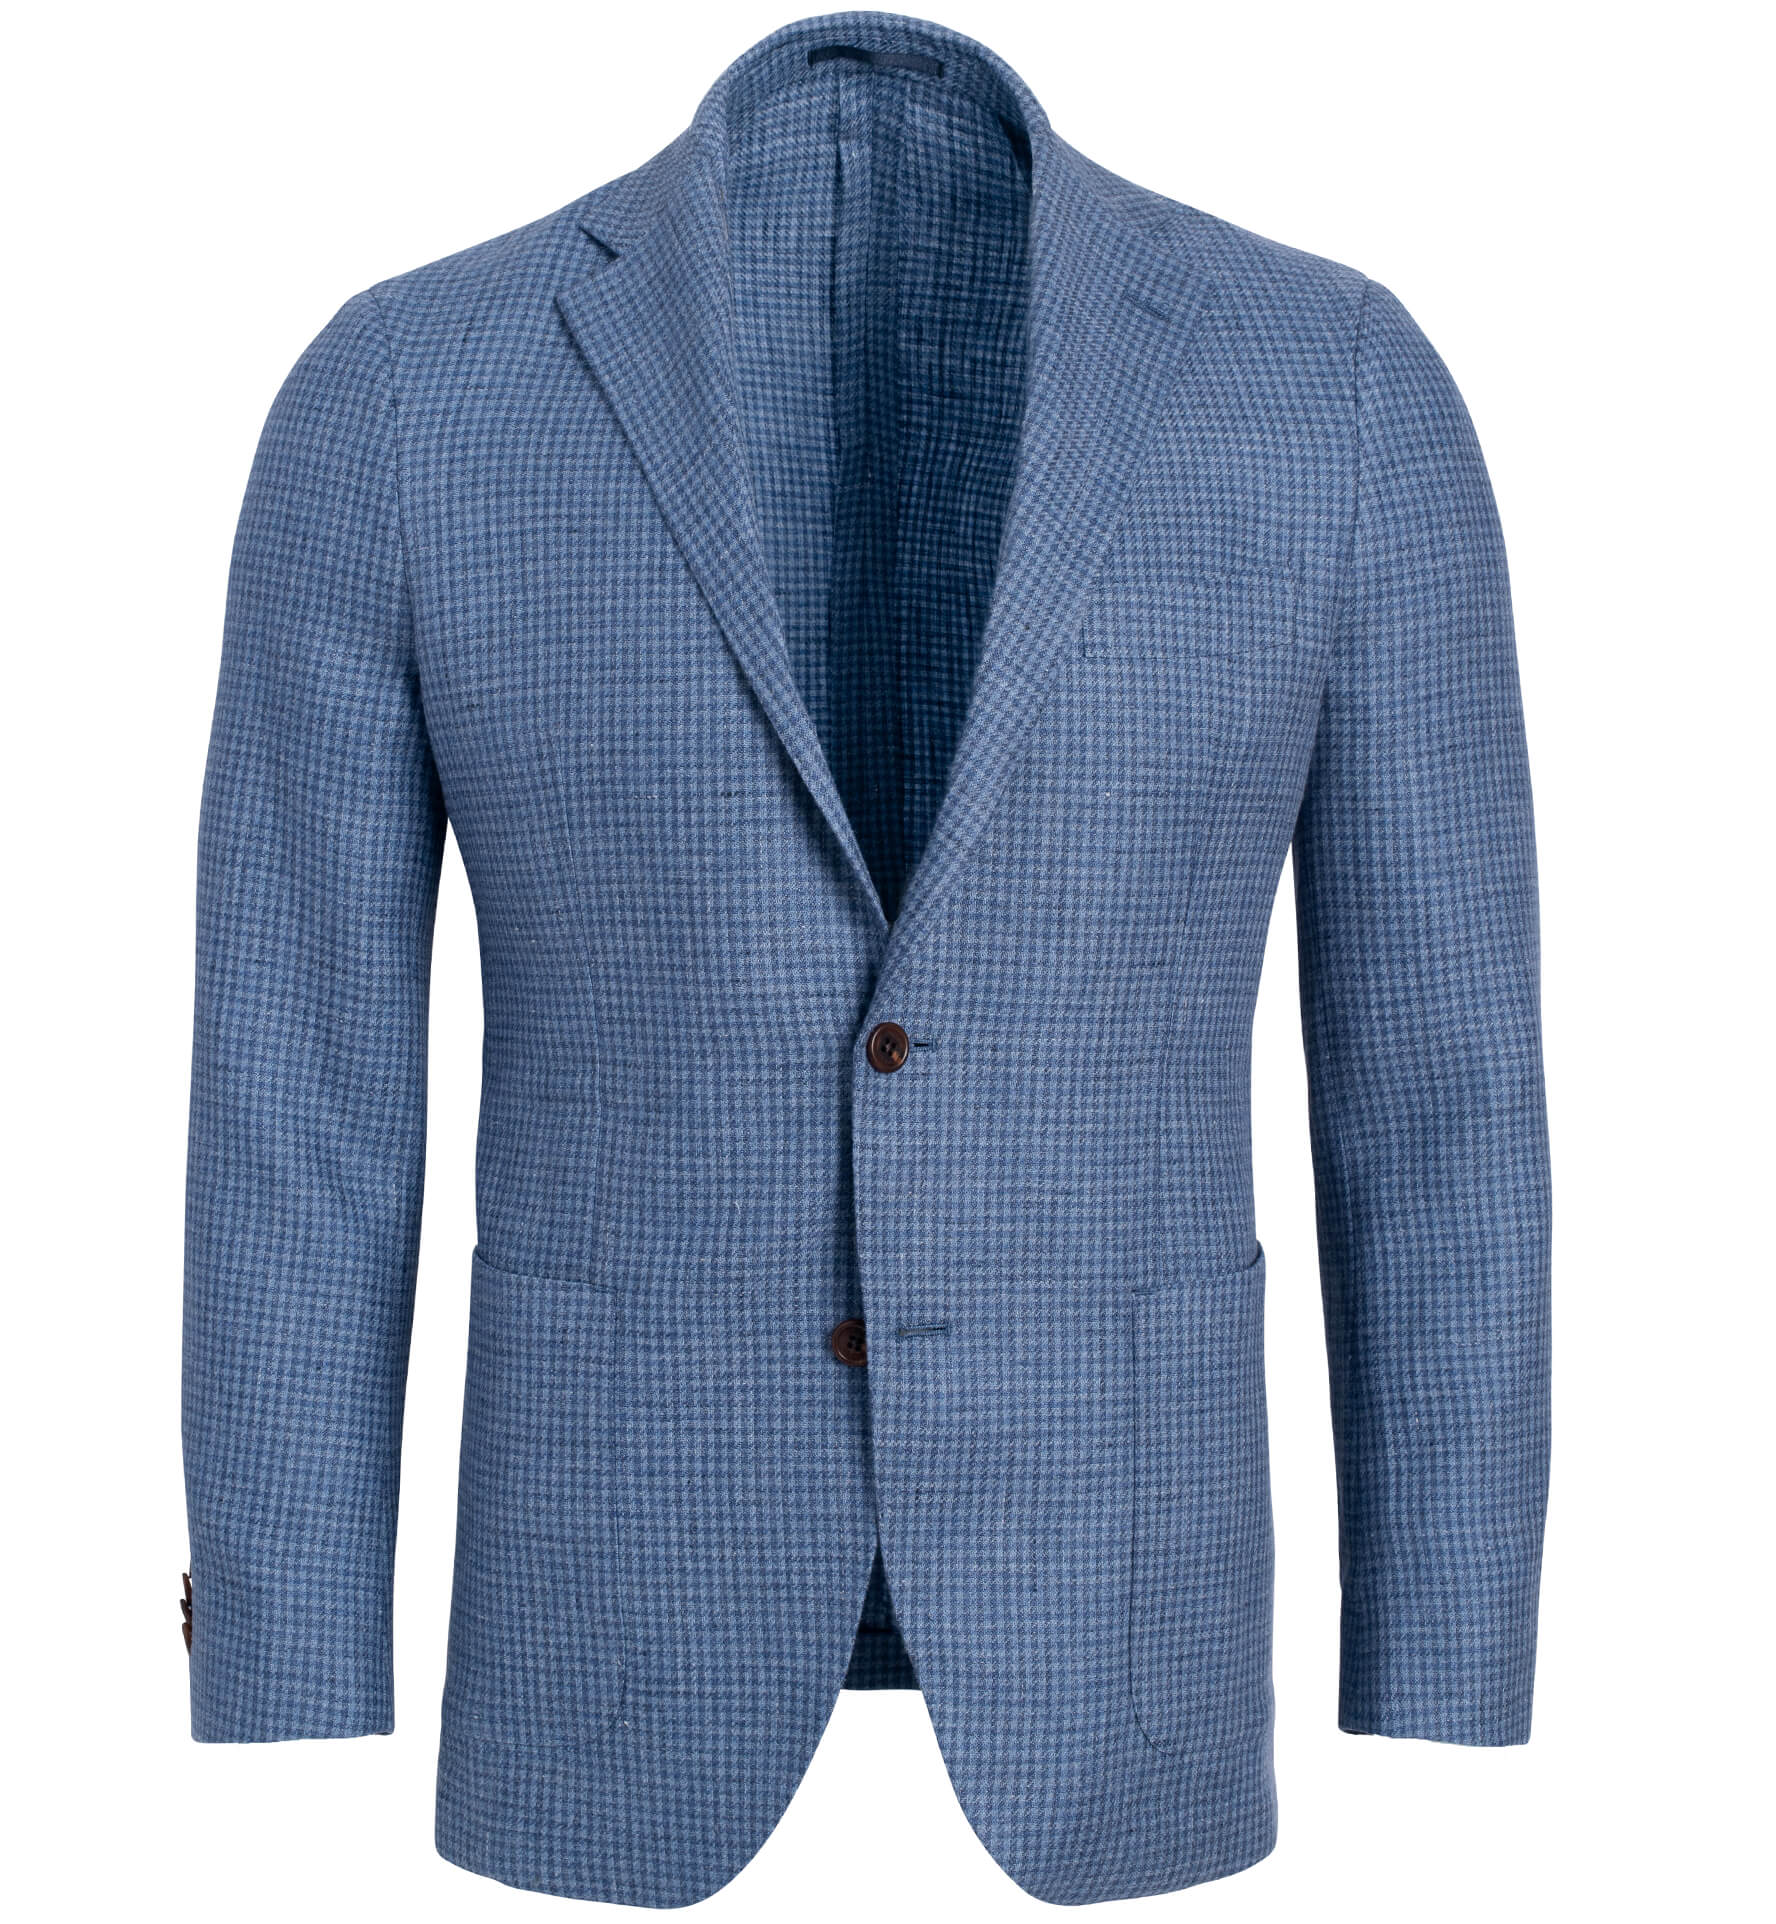 Zoom Image of Bedford Faded Blue Houndstooth Linen and Wool Jacket